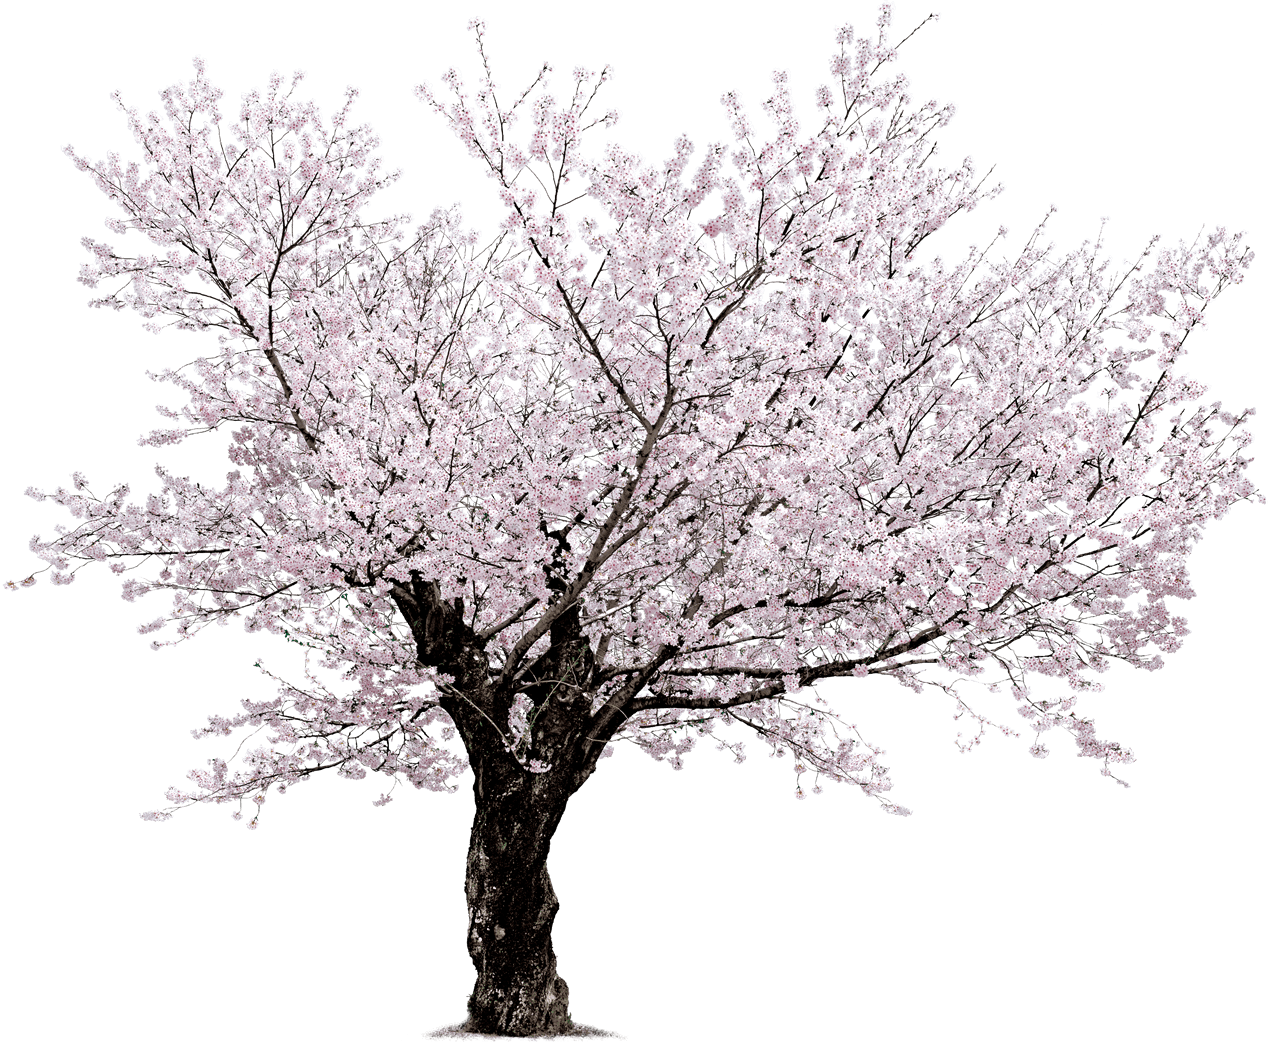 Black and white trees png. Cherry blossom tree hd